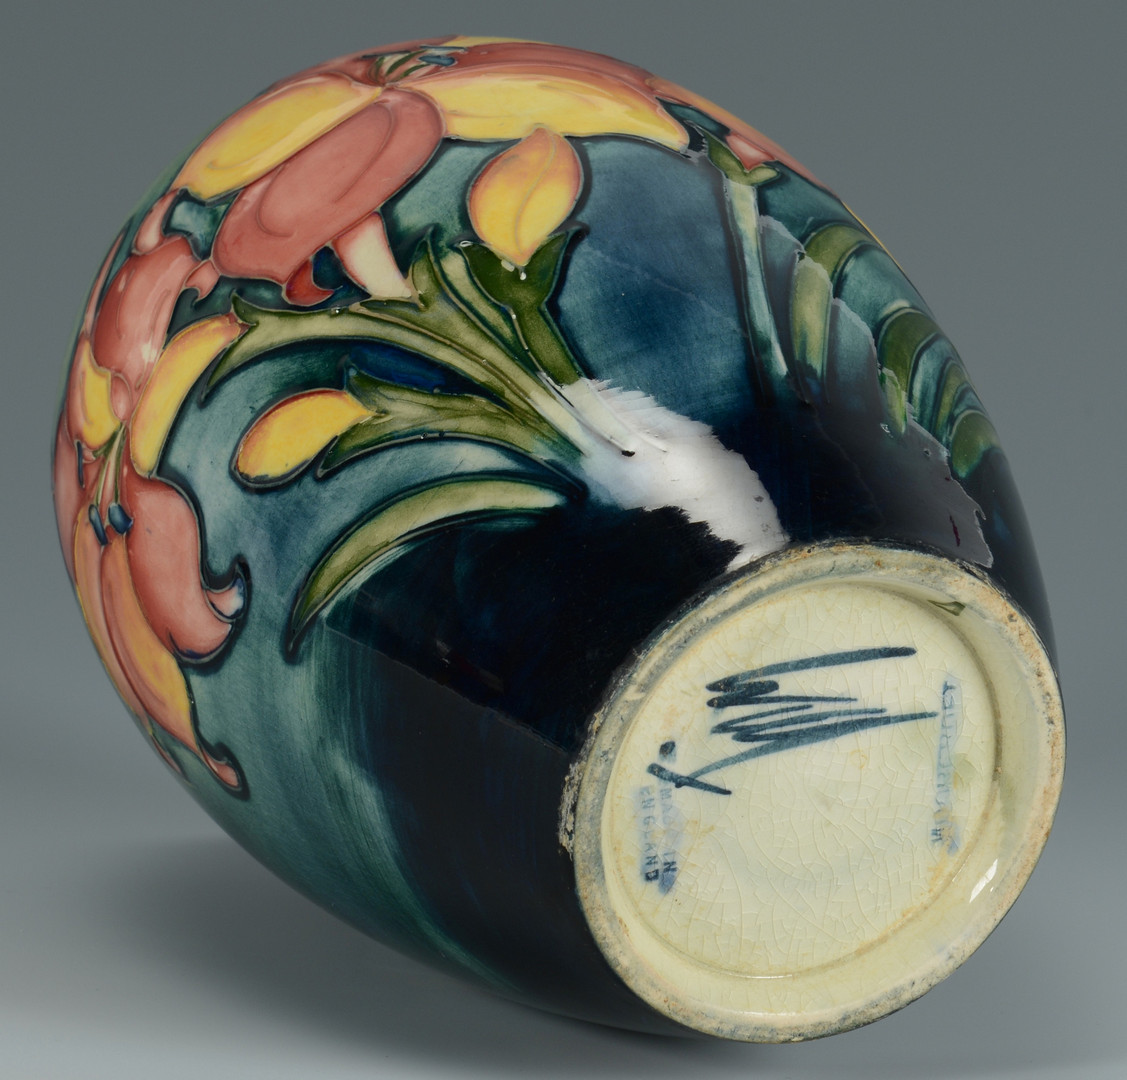 Lot 488: Moorcroft ceramic vase, signed